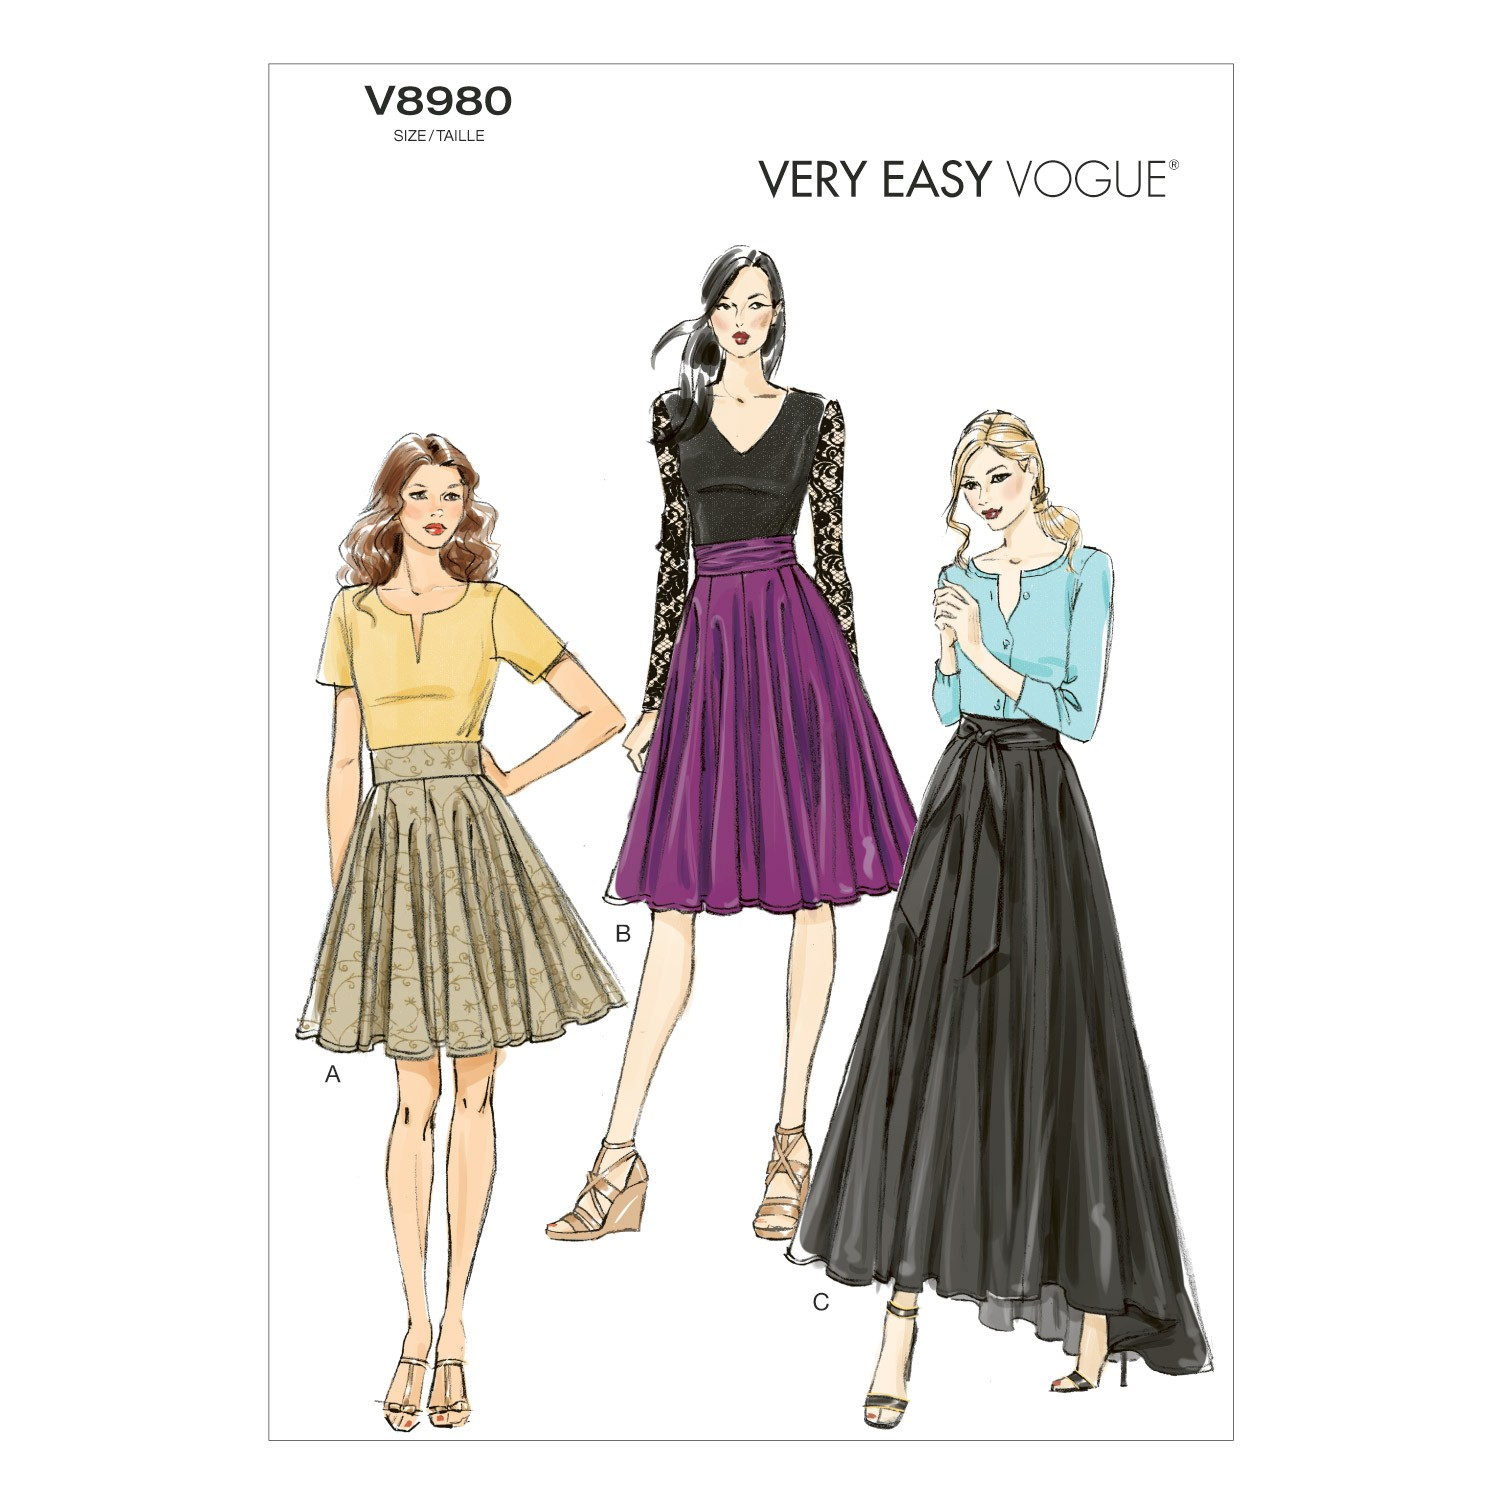 Vogue Sewing Pattern V8980 Women's Pleated Skirt